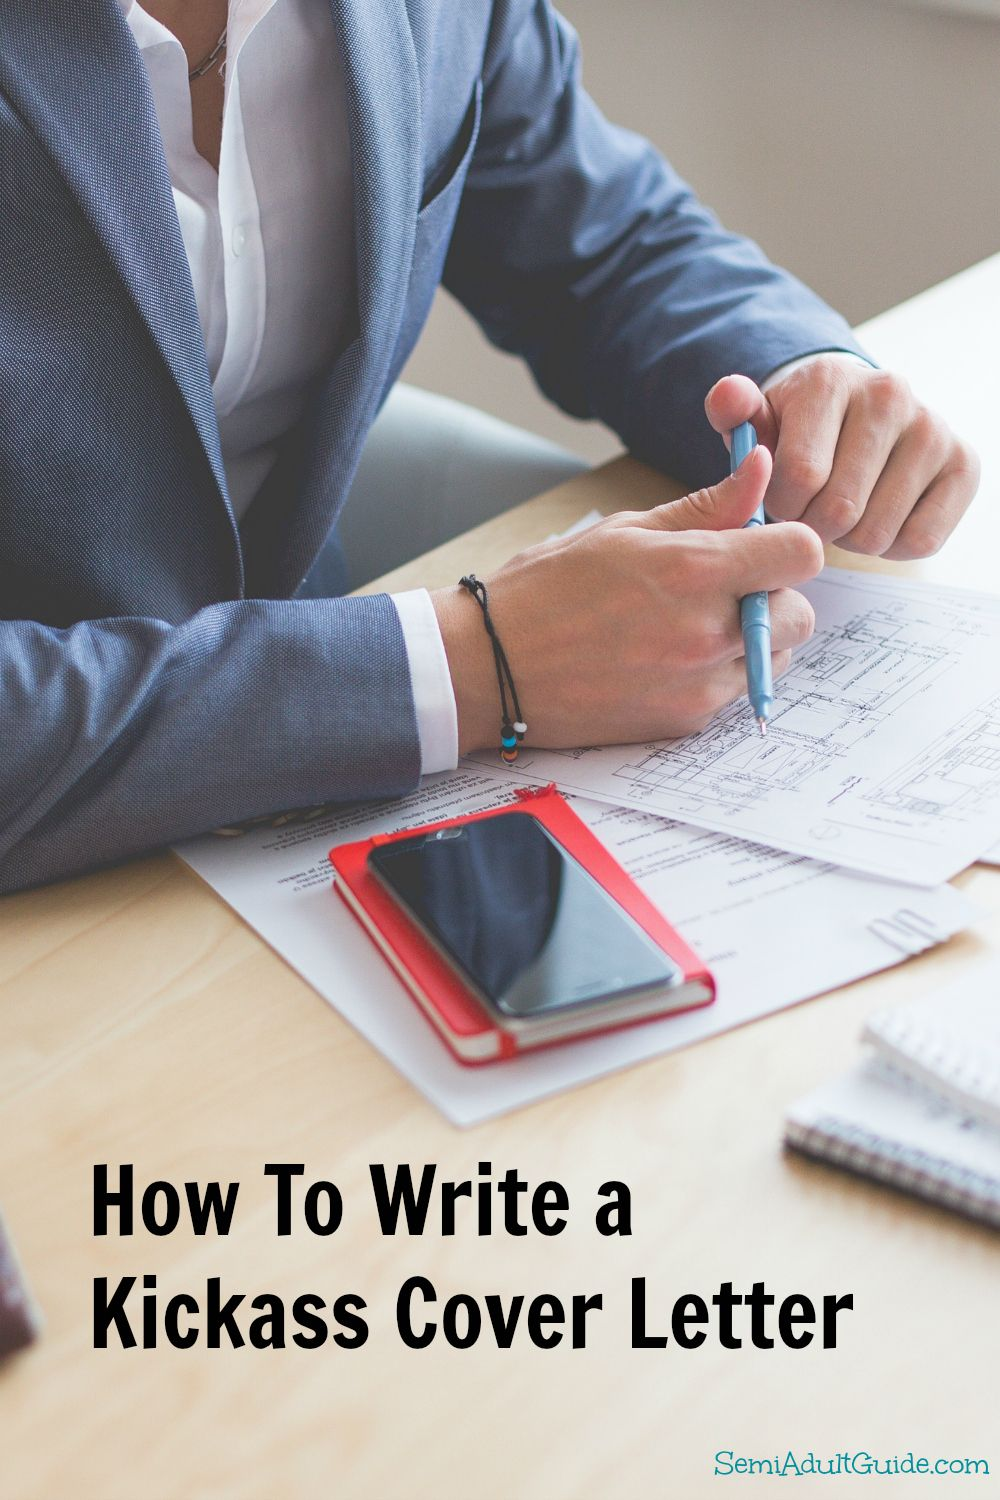 How To Write A Kickass Cover Letter With Templates And Examples - Kick ass cover letter